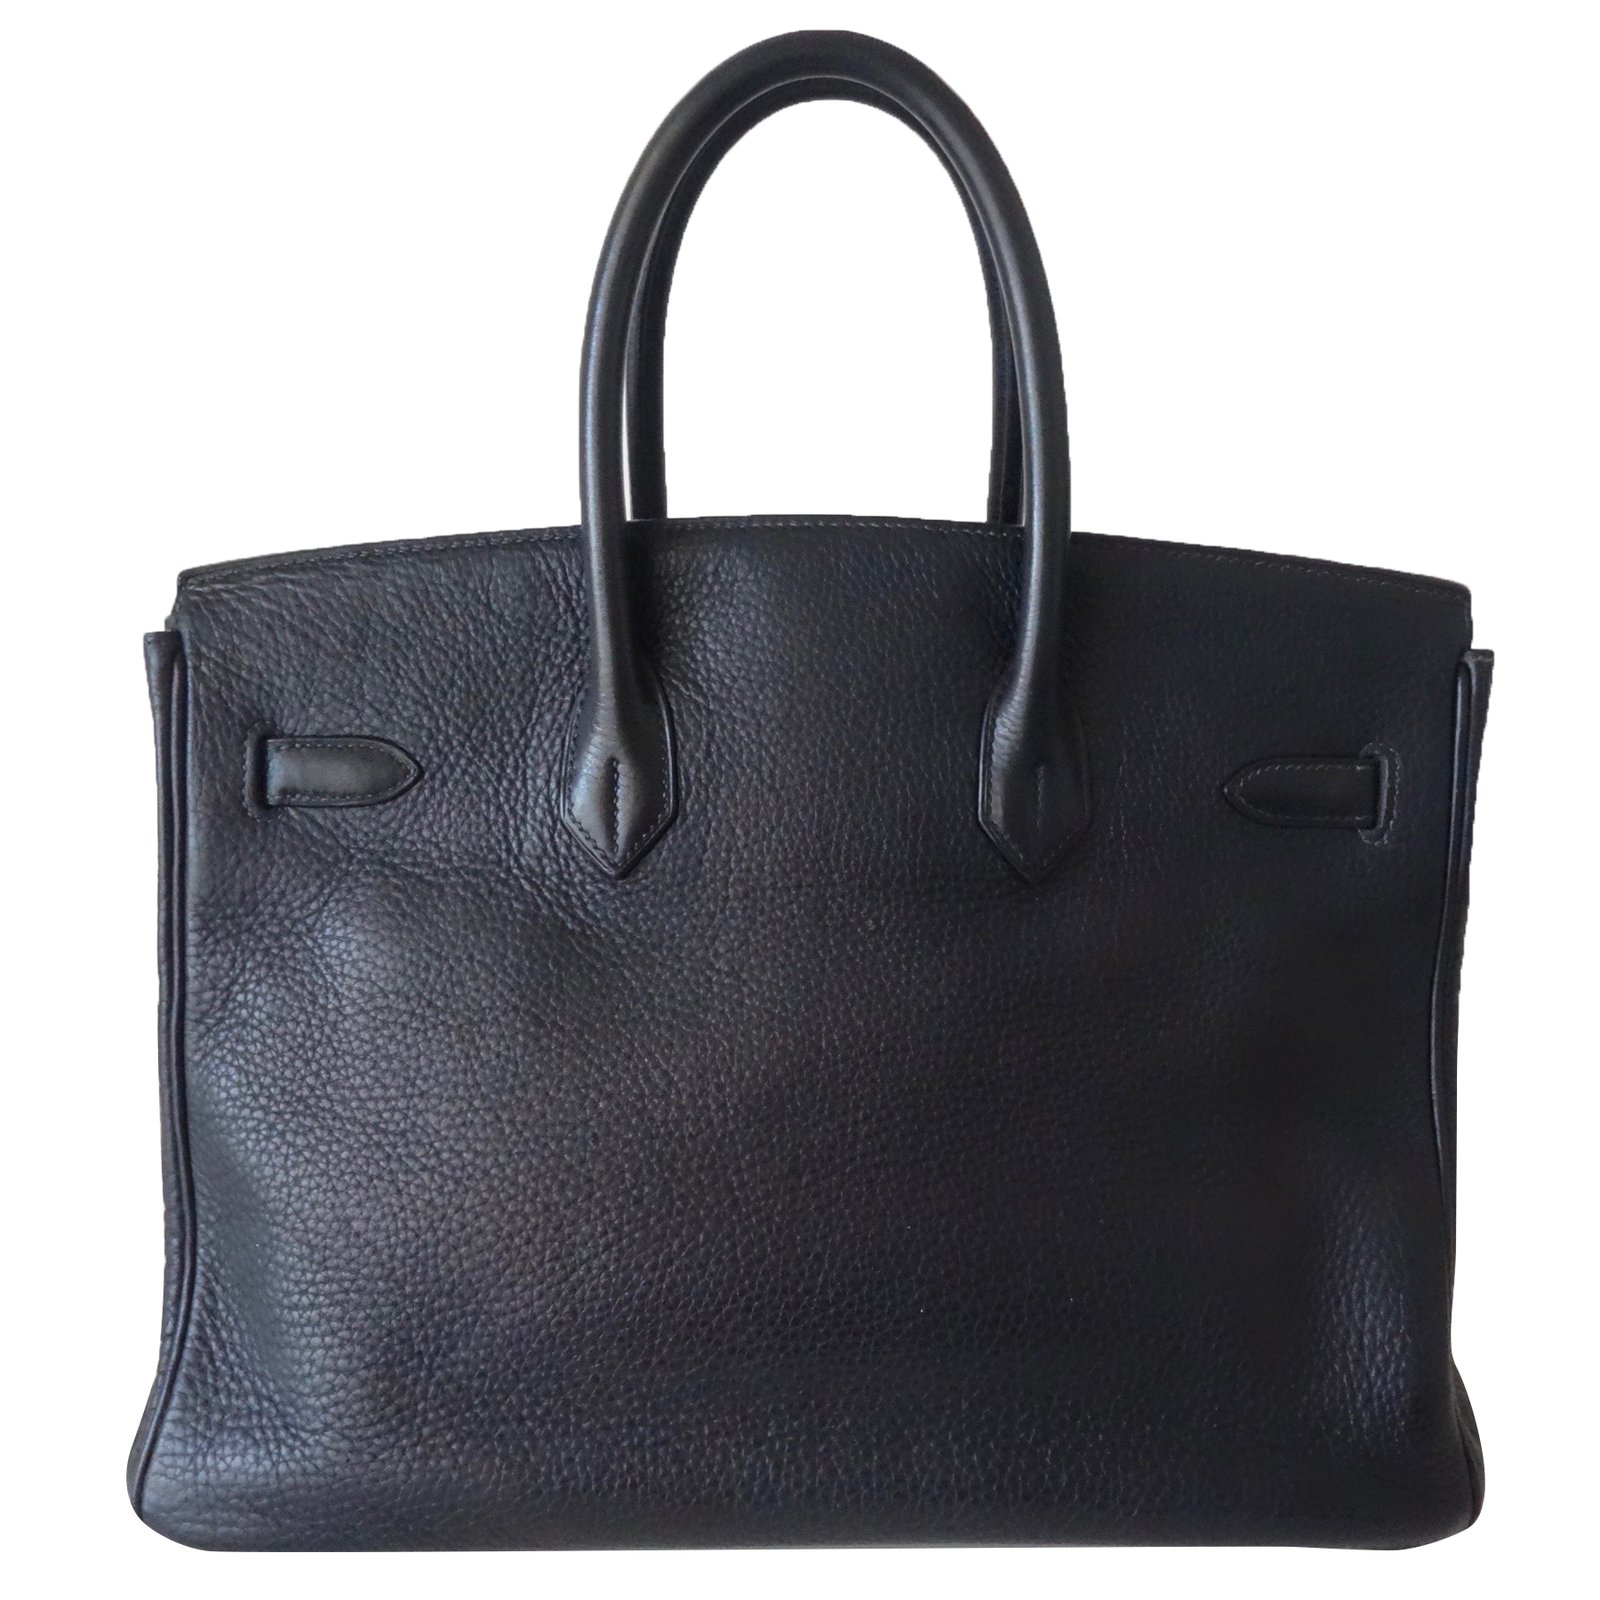 2246f4f9886 Facebook · Pin This. Hermès Birkin 35 Handbags Leather Navy blue ref.73678